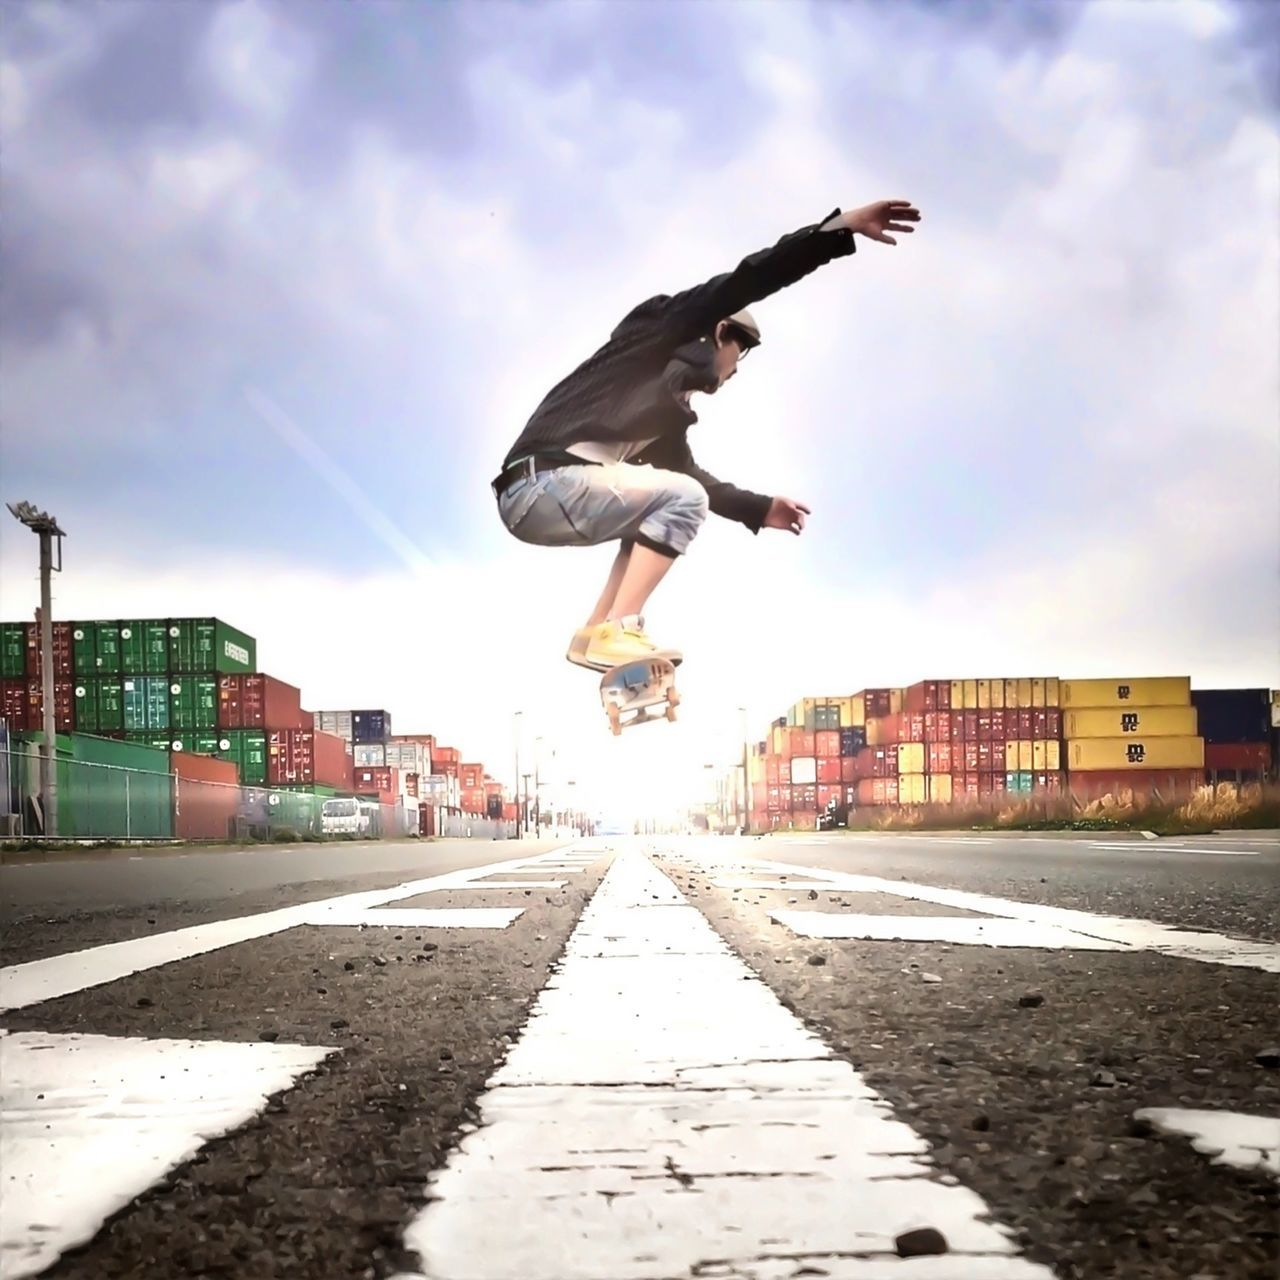 Low angle view of young man skateboarding on road